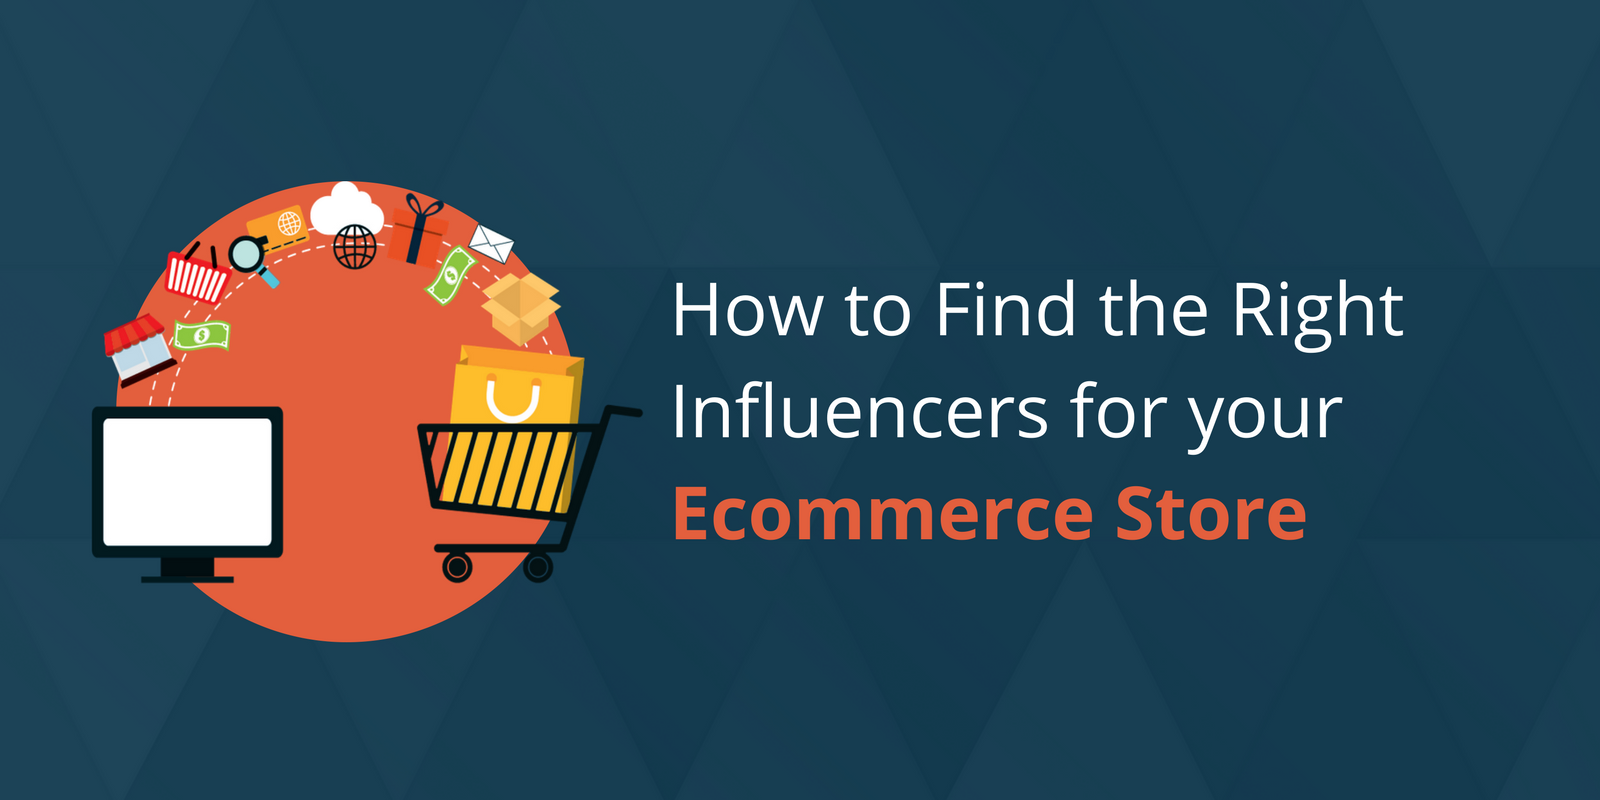 How to Find the Right Influencers for your Ecommerce Store.png